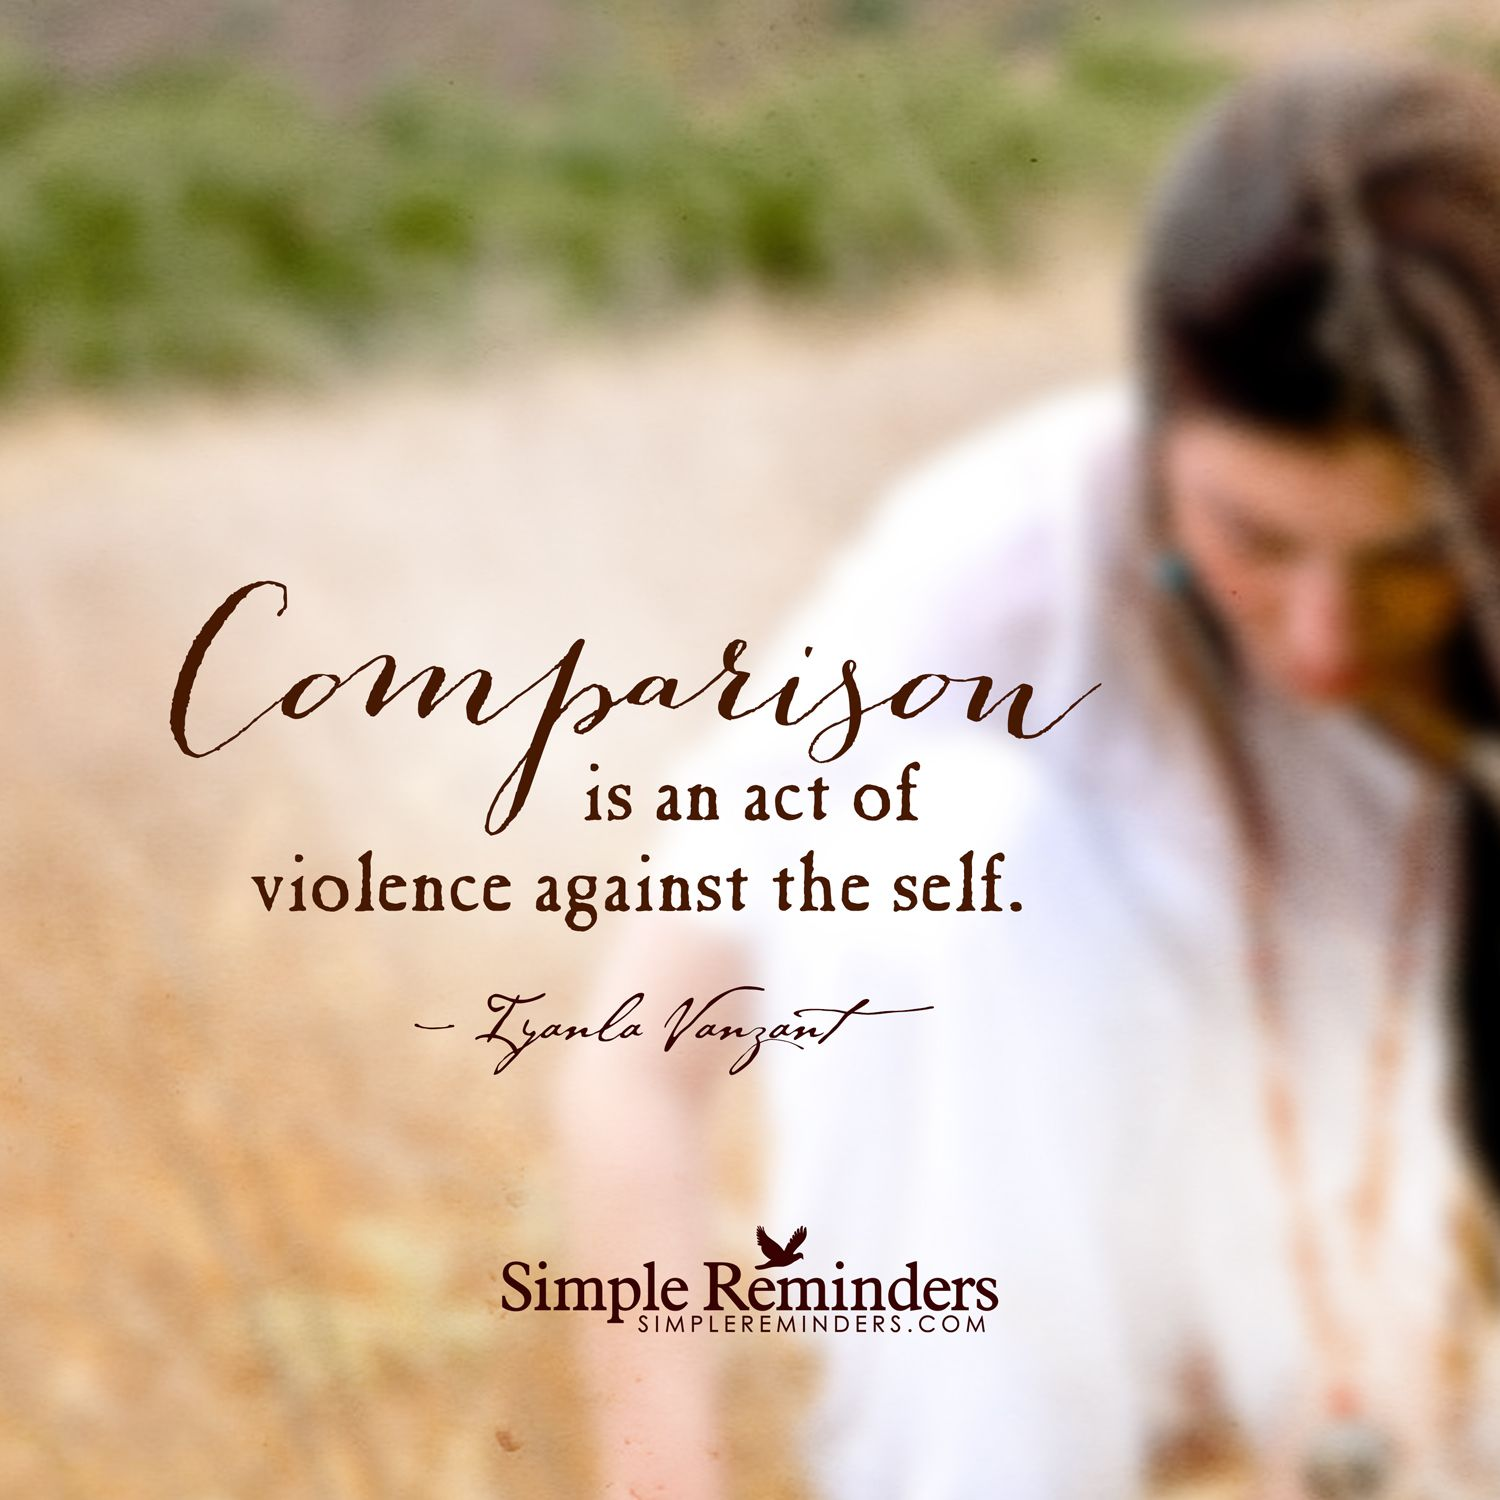 Comparison is an act of violence against the self. — Iyanla Vanzant